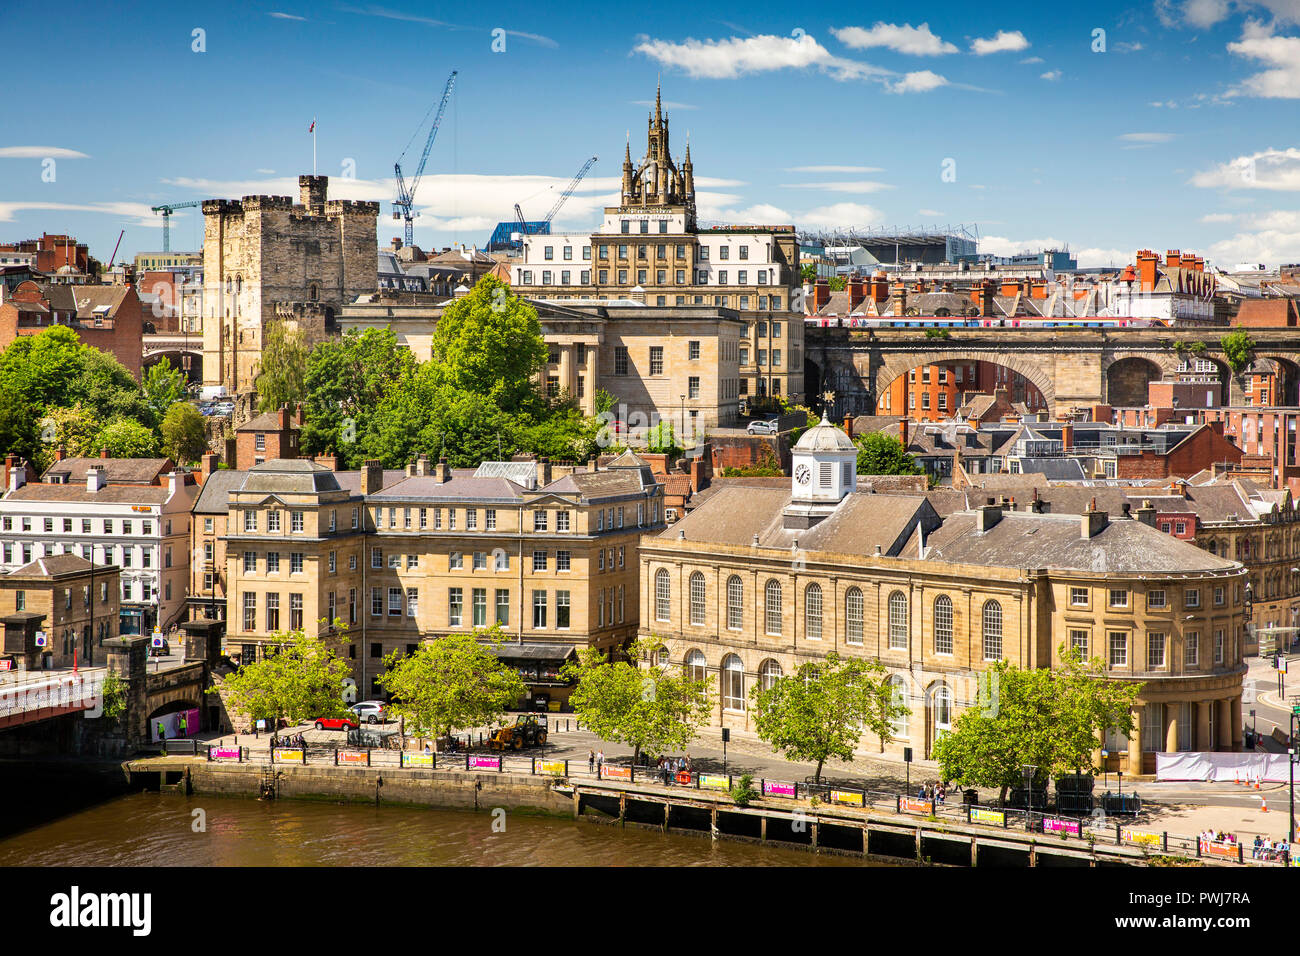 UK, England, Tyneside, Newcastle upon Tyne, elevated view of Guildhall and quayside buildings from Tyne Bridge Stock Photo